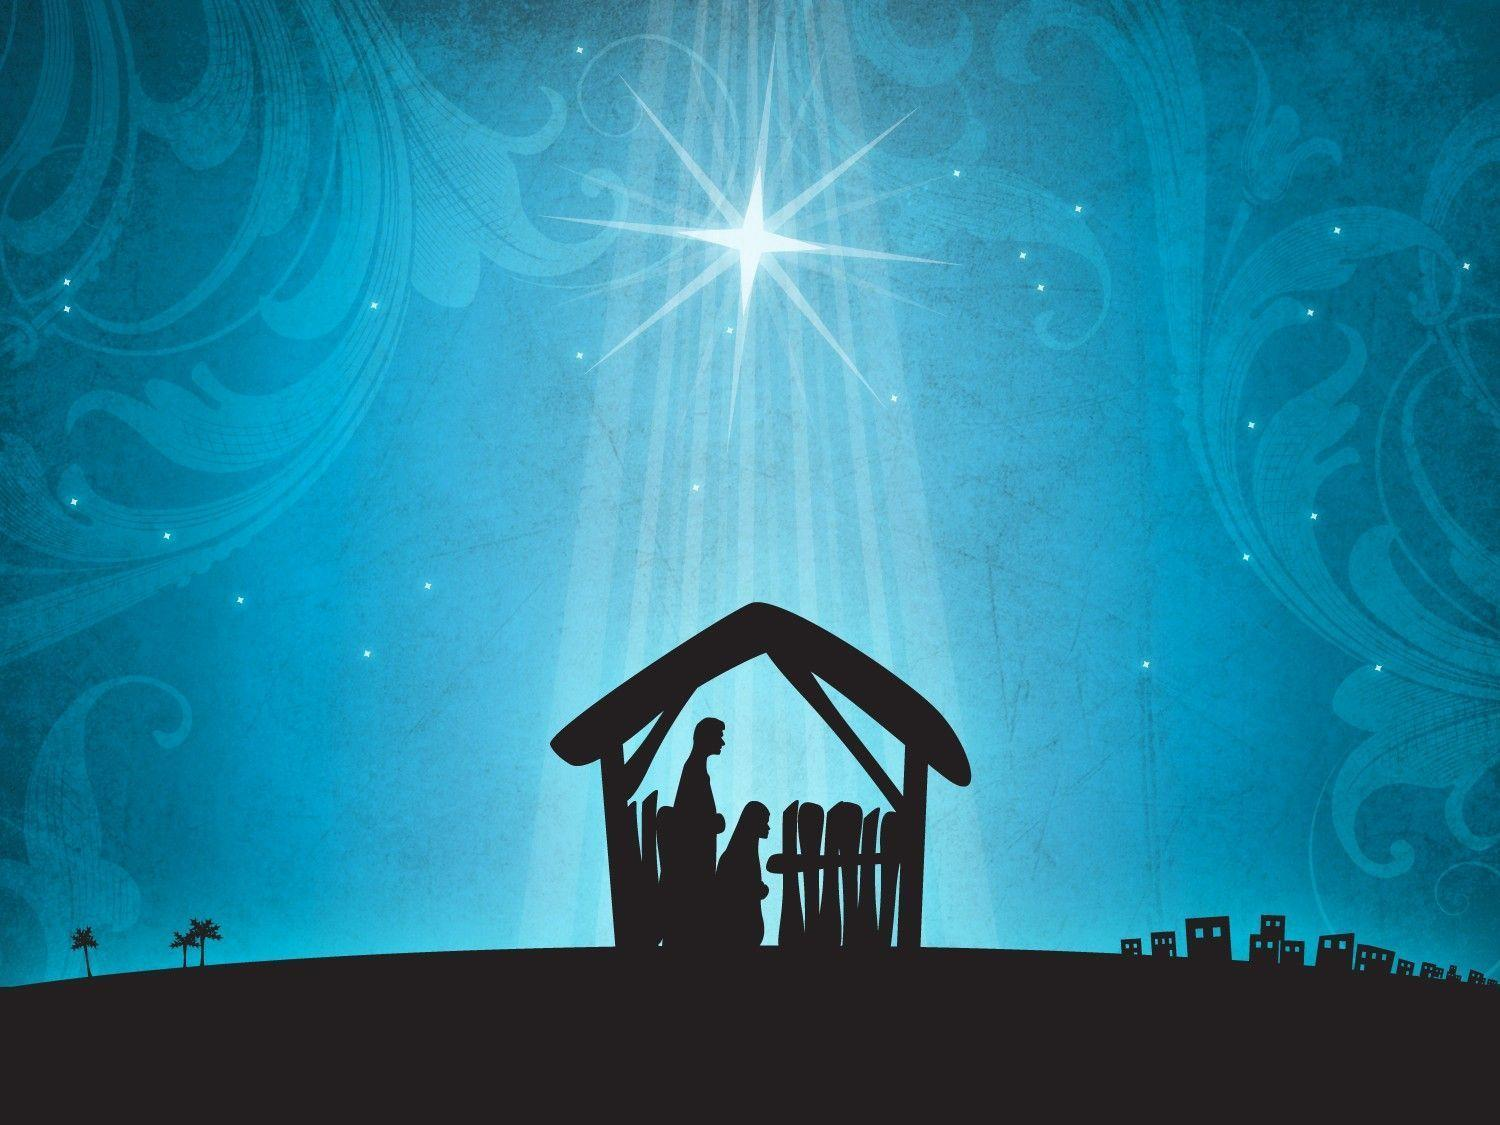 Xmas Stuff For > Merry Christmas Nativity Backgrounds